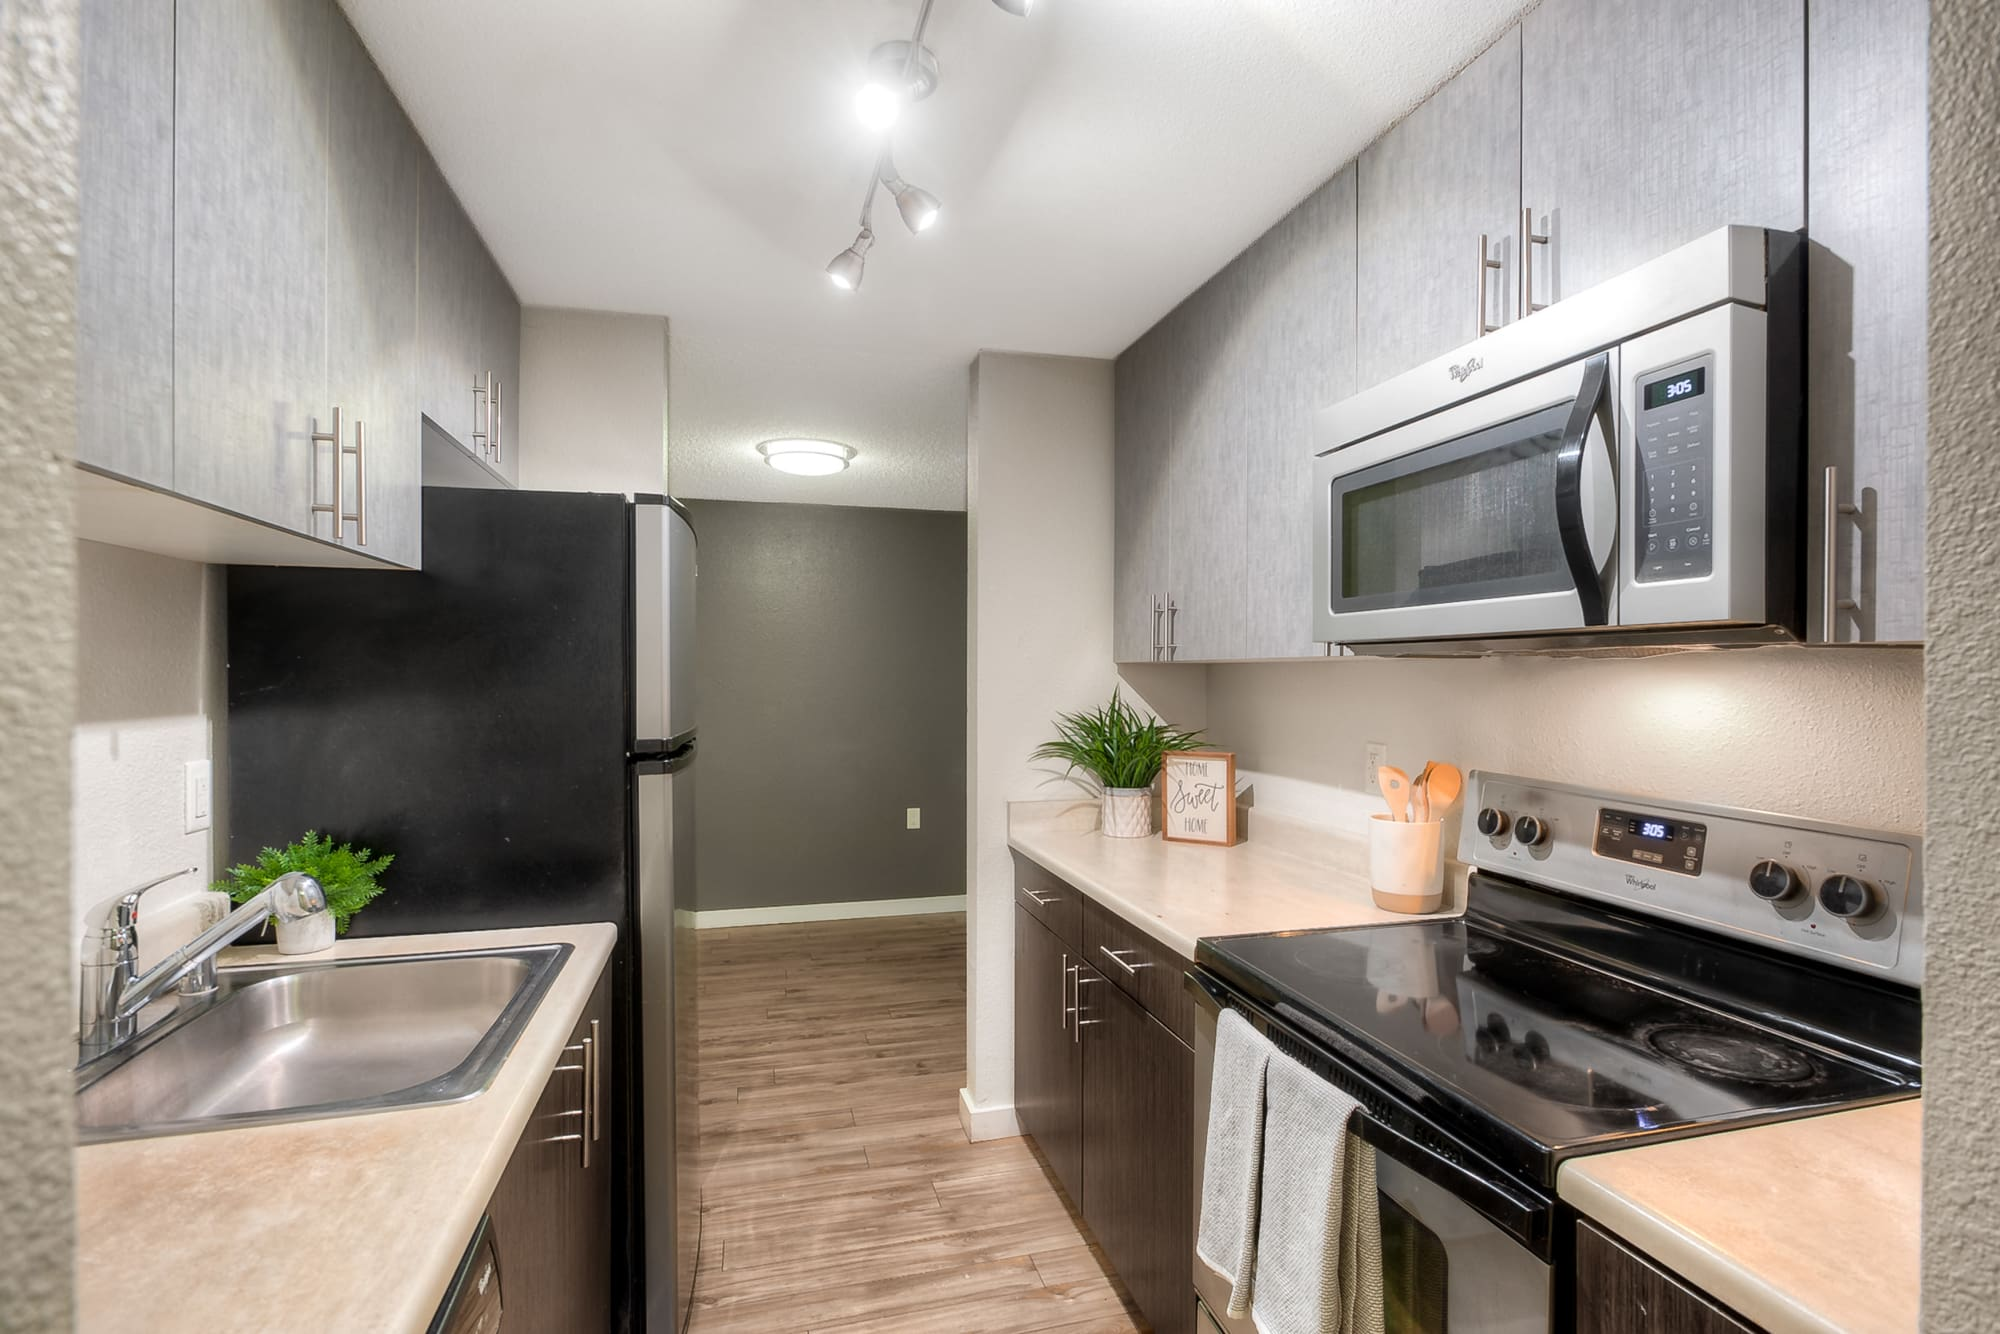 Renovated Kitchen with stainless steel appliances at Karbon Apartments in Newcastle